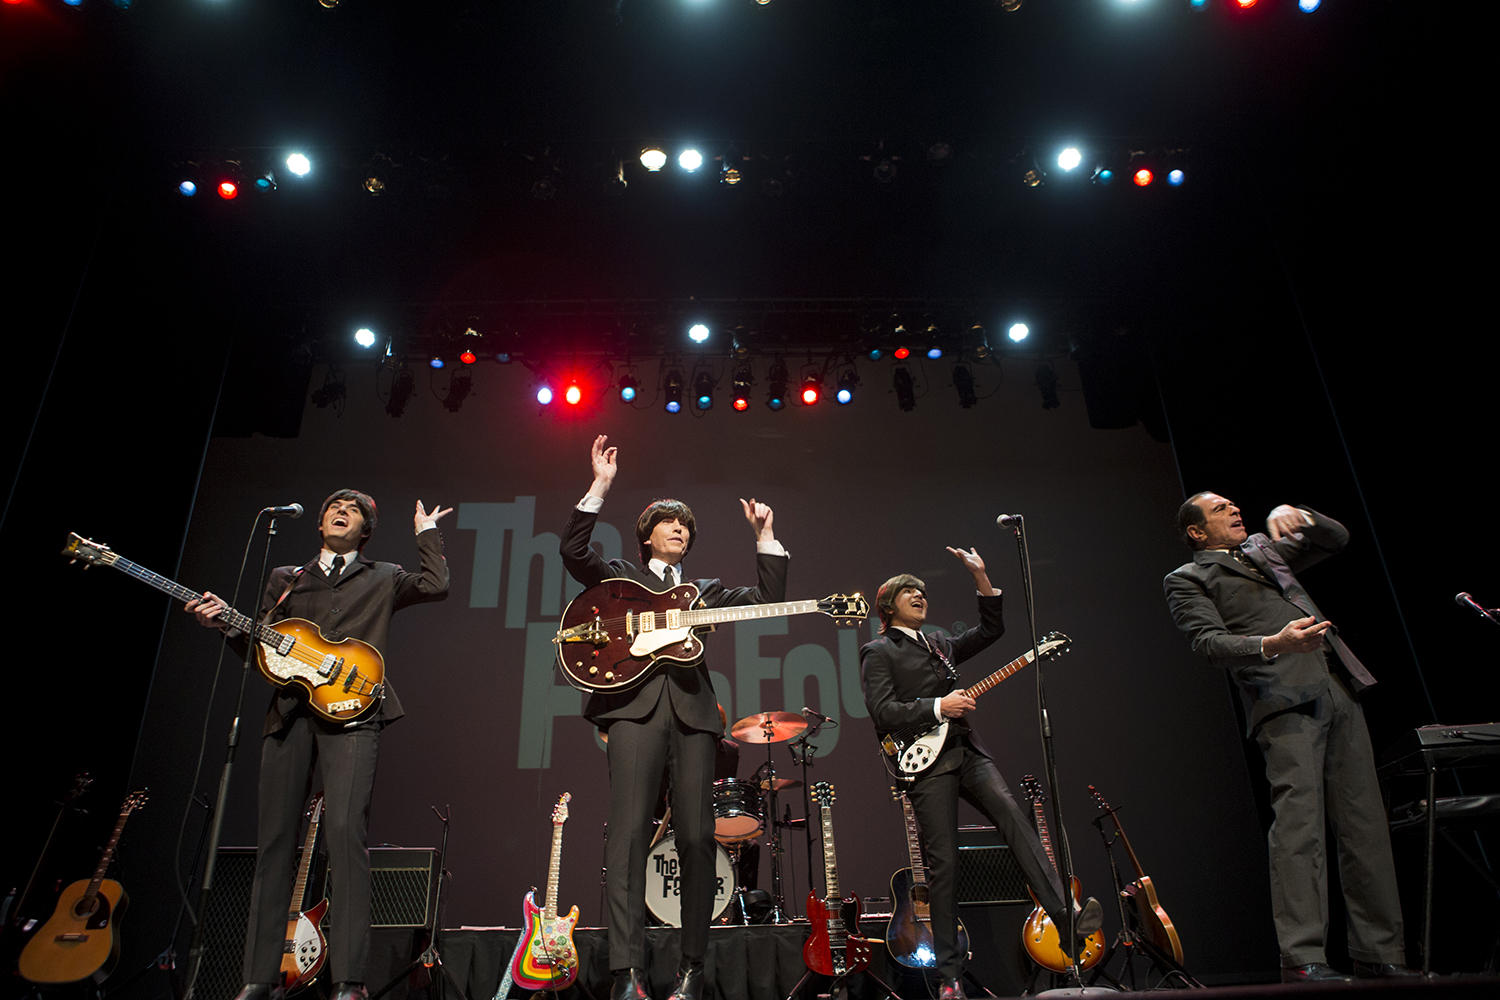 The Fab Four opens at the Englert Theatre in Iowa City on Wednesday, February 13, 2019. The group is a Beatles Tribute band that has been booking gigs around the world for over 20 years.